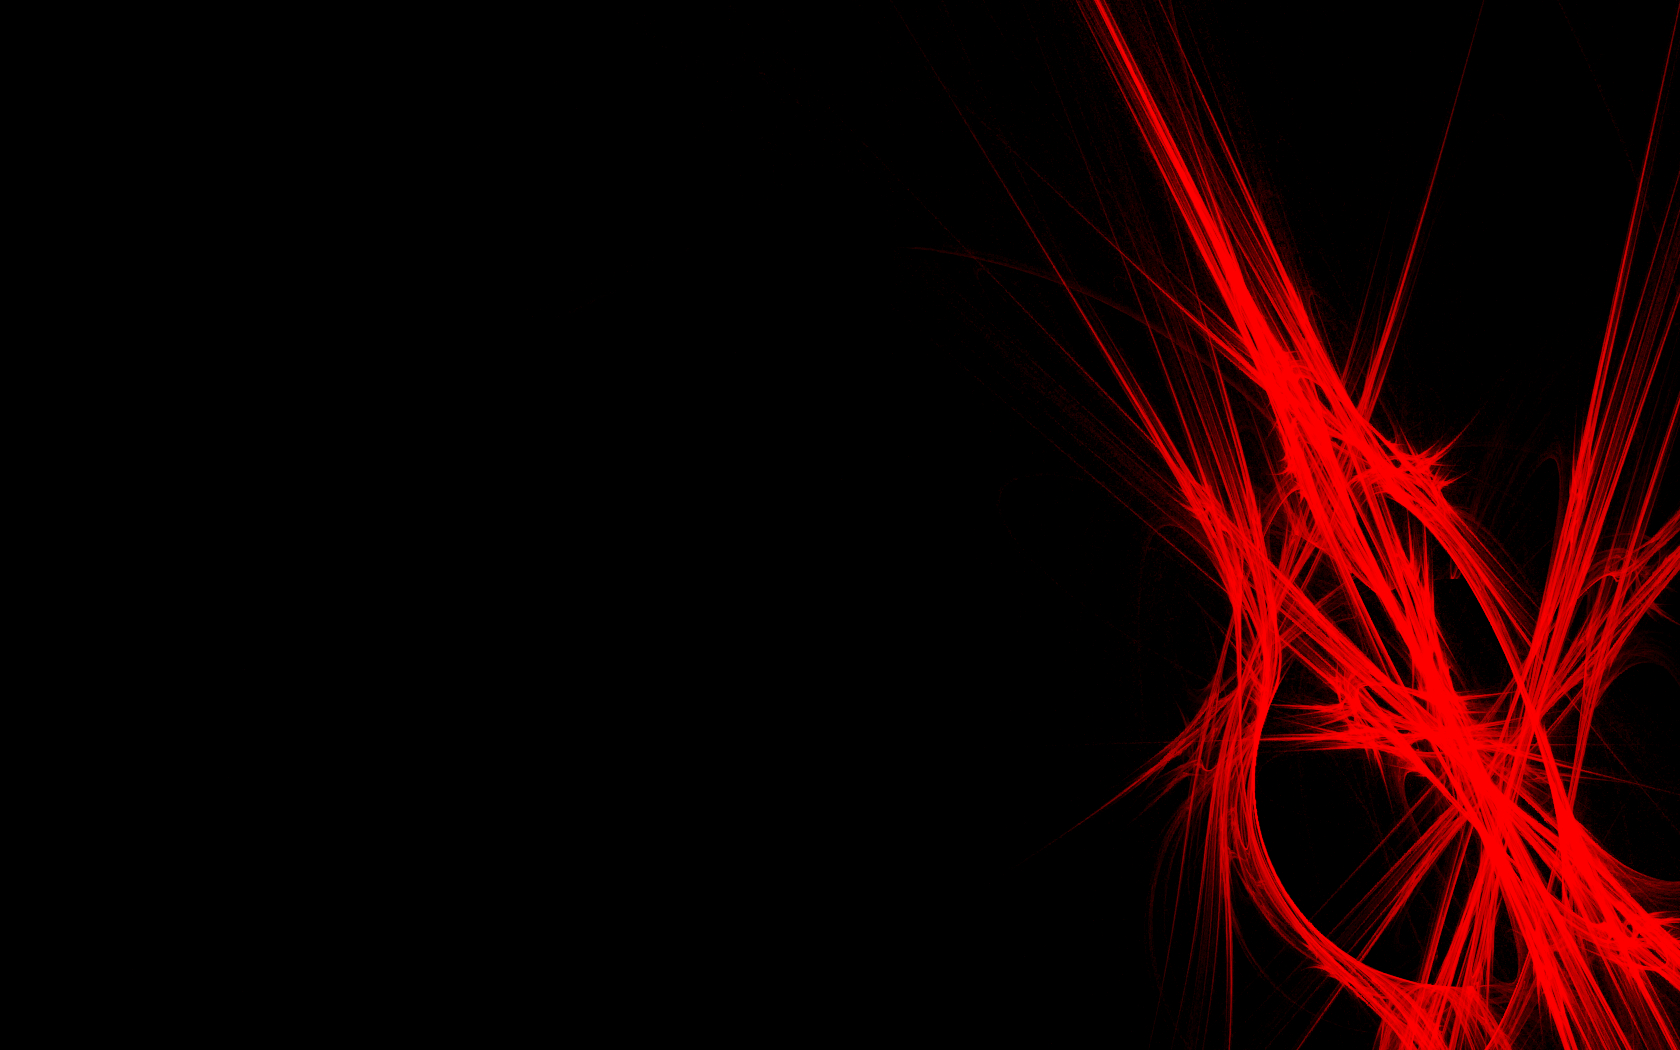 Background Black And Red Sf Wallpaper